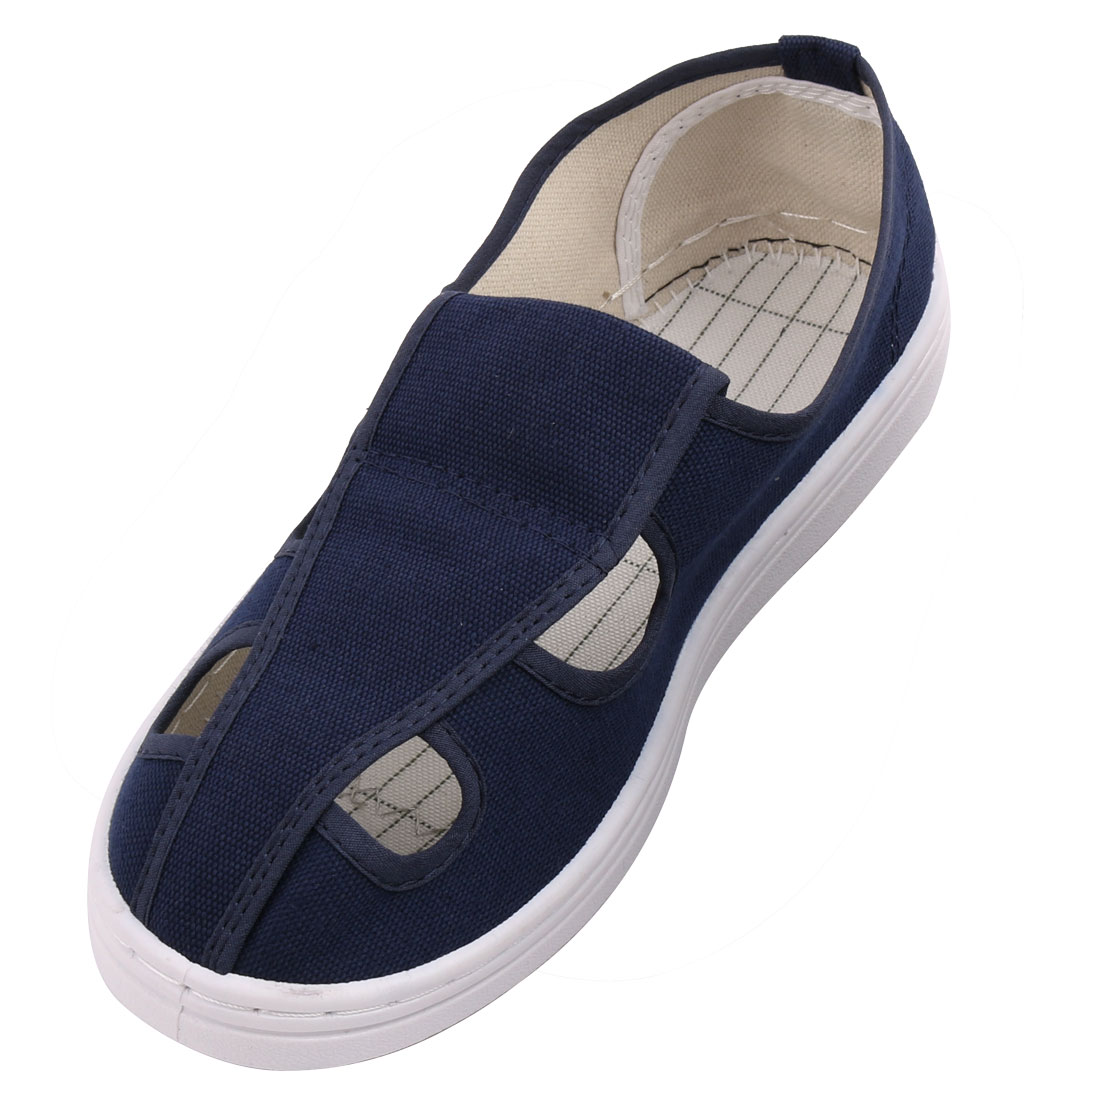 US6 UK4 EU36 PU Soft Bottom Nonslip Flat Sole Anti-static 4-Hole Canvas Shoes